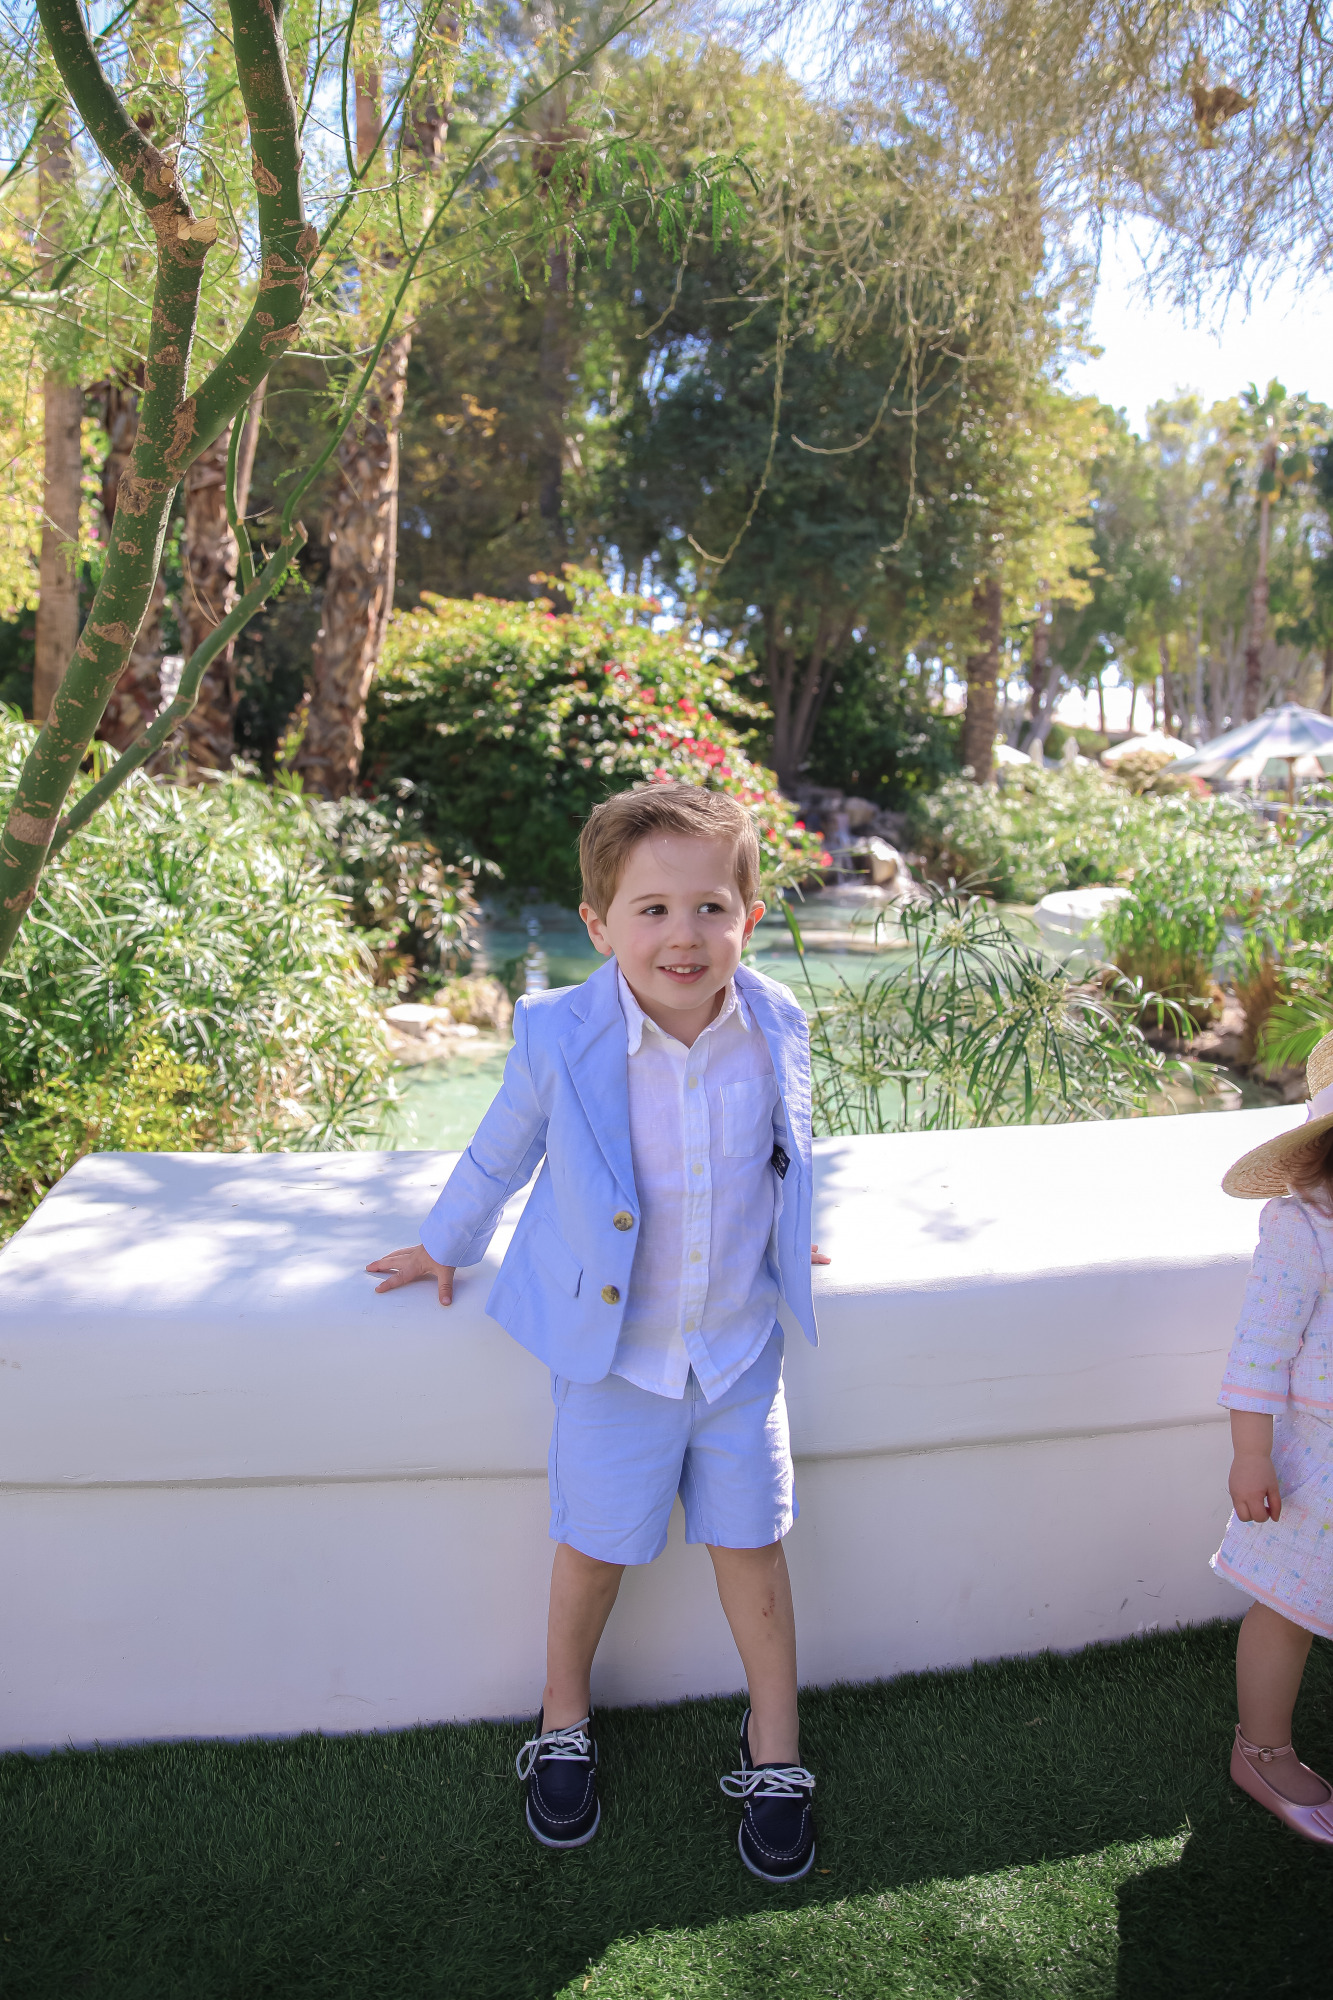 janie and jack easter kids outfits 2021, kids easter outfit ideas toddler, emily gemma, scottsdale fashion blog9 |Spring Outfit Ideas for Kids by popular US fashion blog, The Sweetest Thing: image of a young boy and girl standing outside next to a landscaped pond and wearing aPink Boucle Jacket, Pink Boucle Shorts, Pink Bow Flats, White Purse, Straw Sun Hat, Seersucker Blazer, Seersucker Shorts, White Button-down, and Leather Boat Shoes.